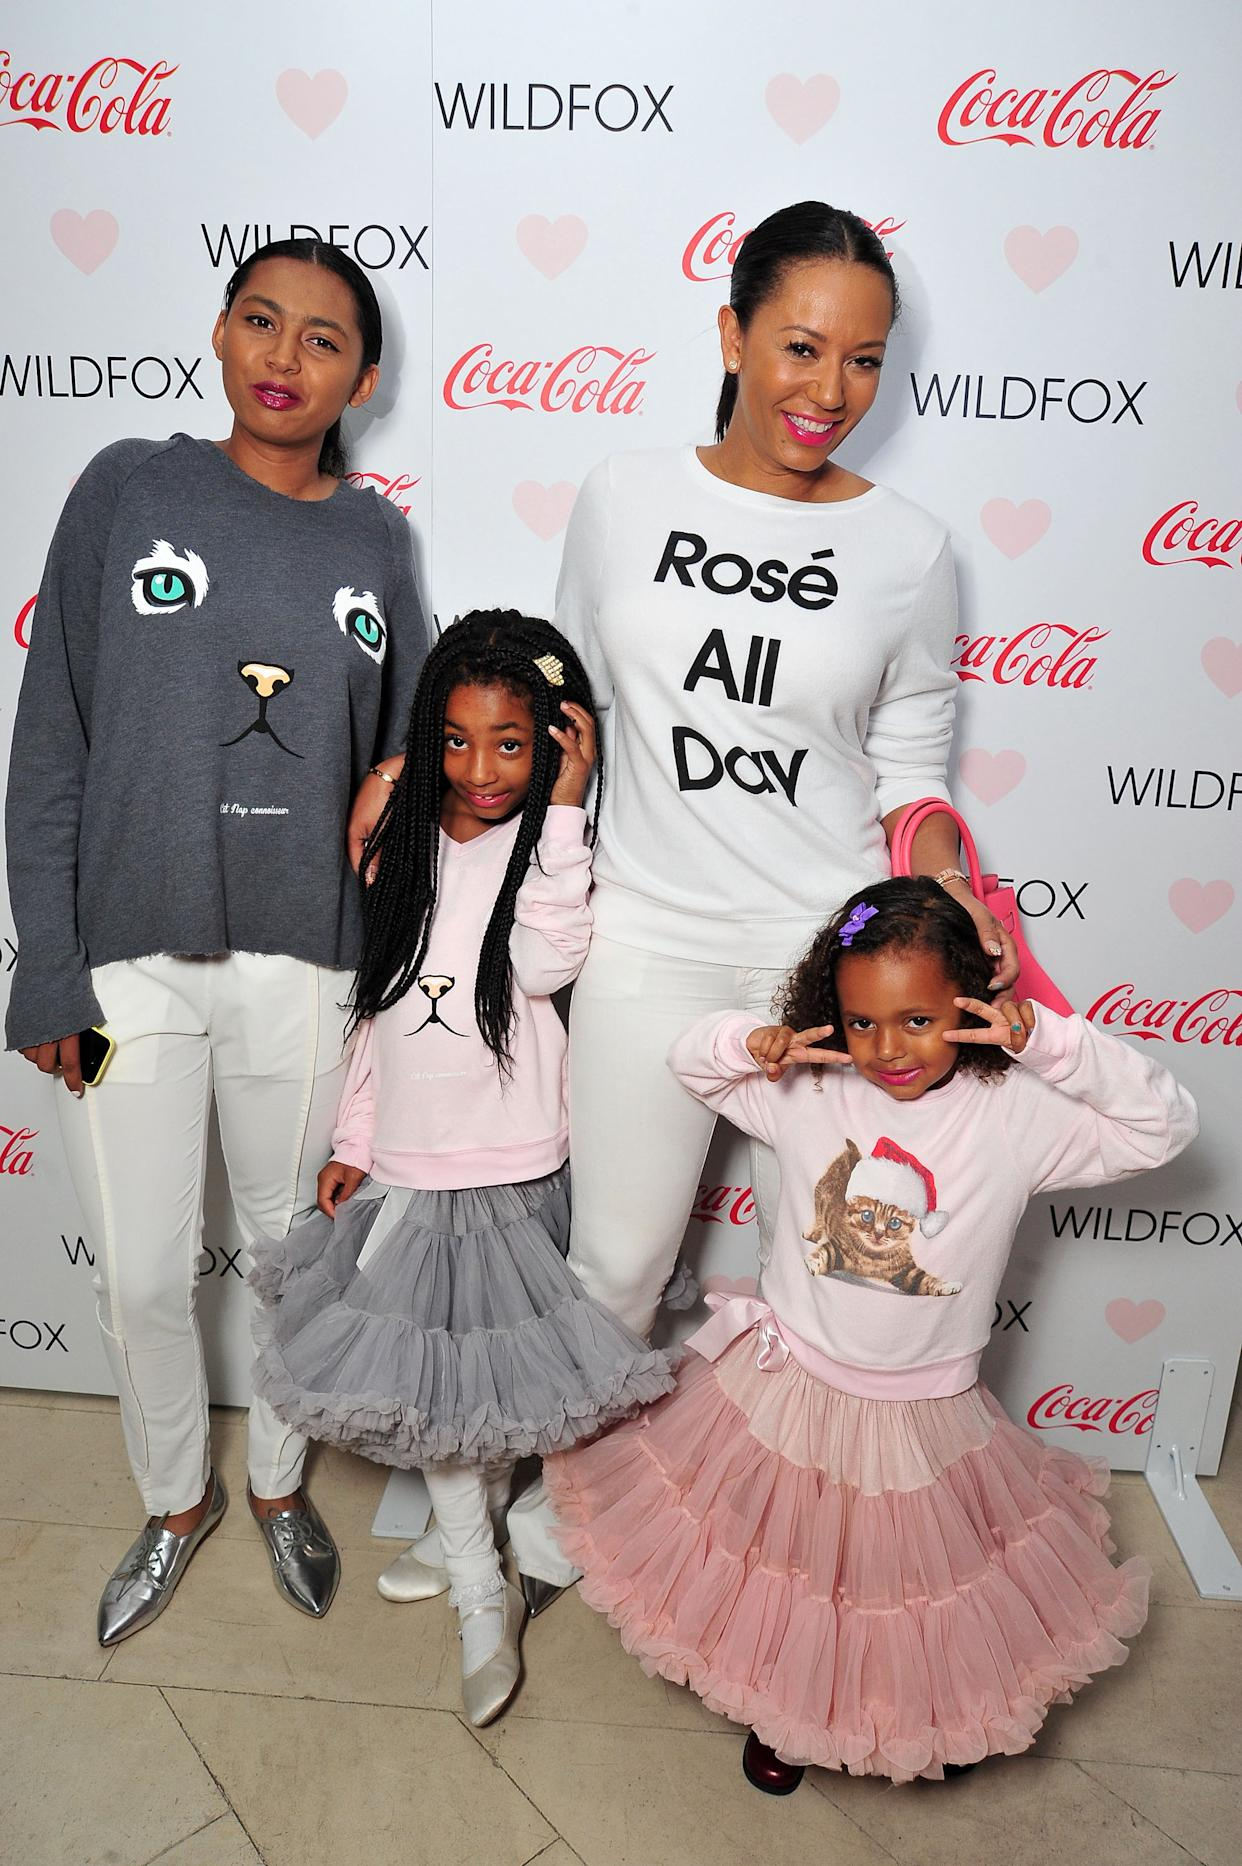 WEST HOLLYWOOD, CA - OCTOBER 22: (L-R) Phoenix Chi Gulzar, Angel Brown, Mel B and Madison Brown Belafonte attend the Launch Party for WILDFOX Loves Coca-Cola Capsule Collection on October 22, 2015 in West Hollywood, California.  (Photo by Jerod Harris/Getty Images for Coca-Cola)